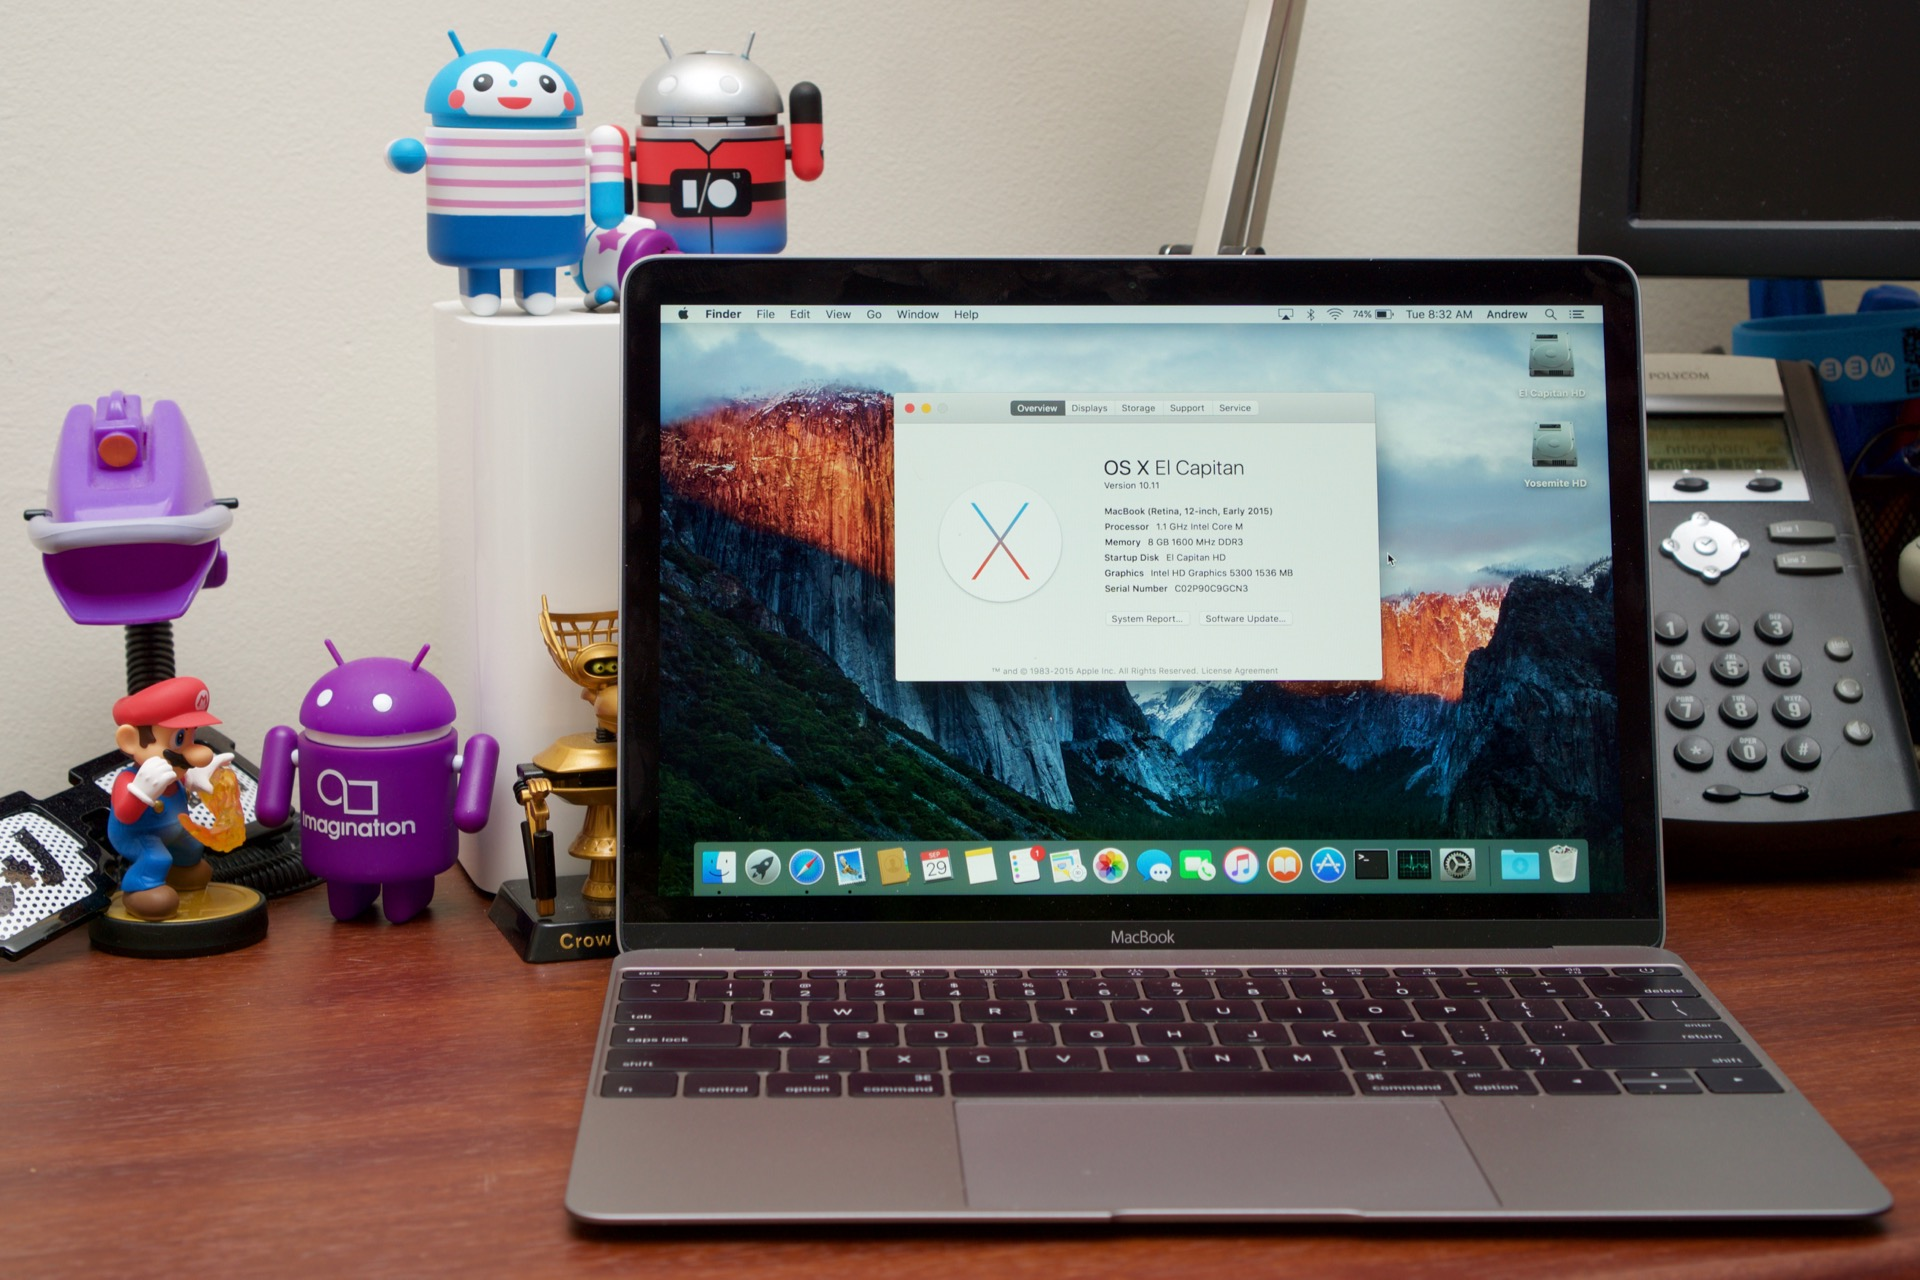 El Capitan on the 2015 MacBook.